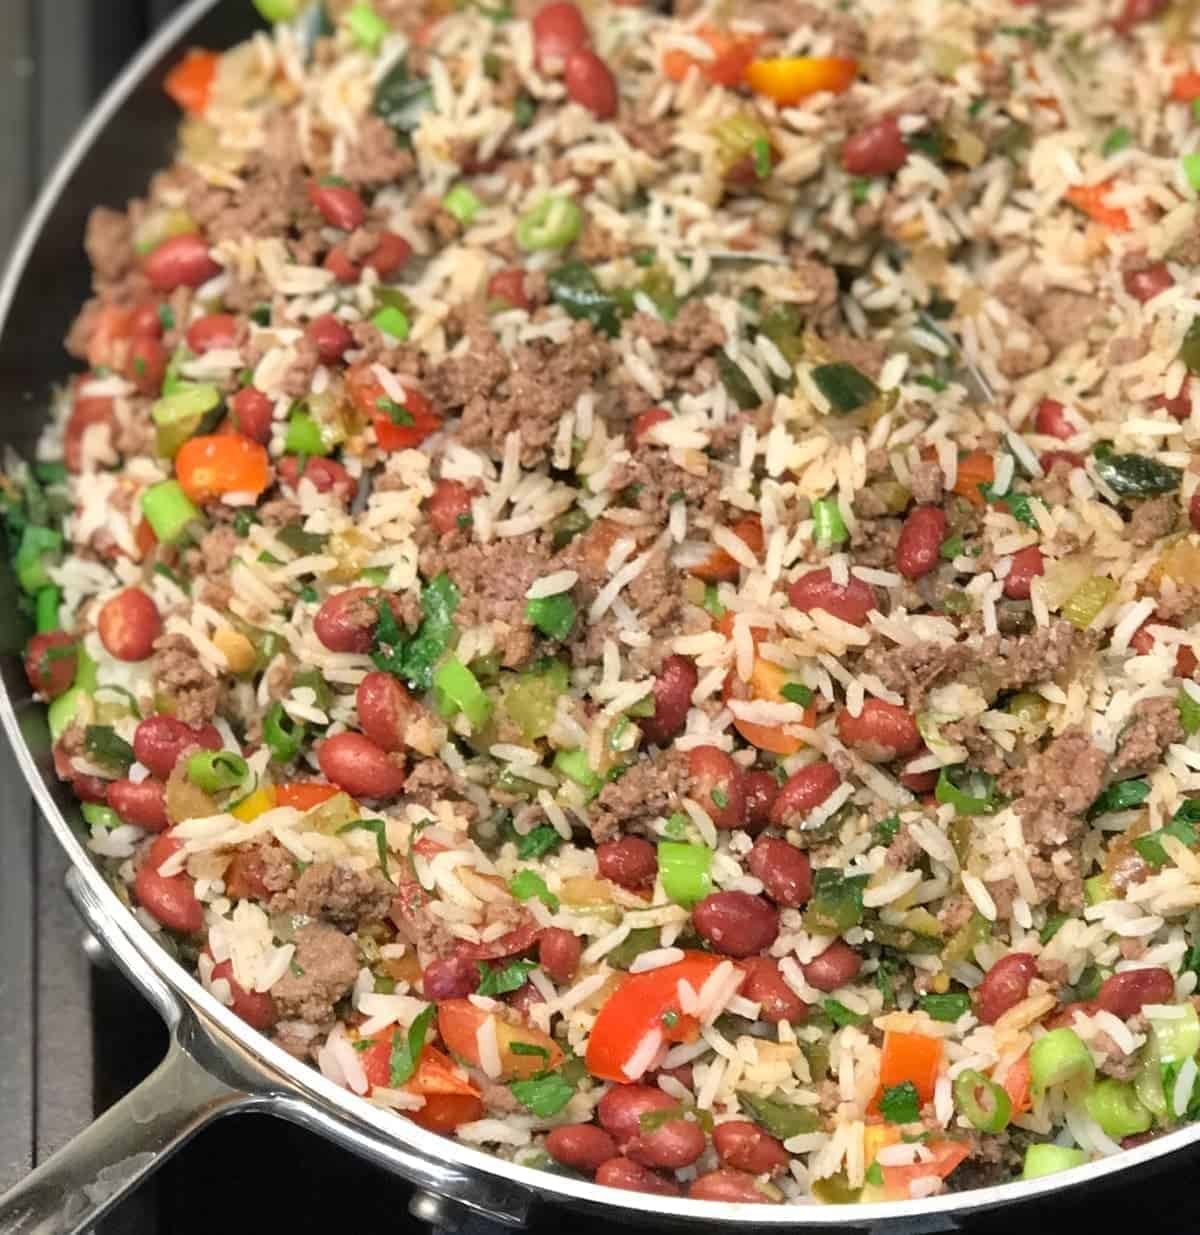 Puerto Rican Dirty Fried Rice. recipe by foodology geek.